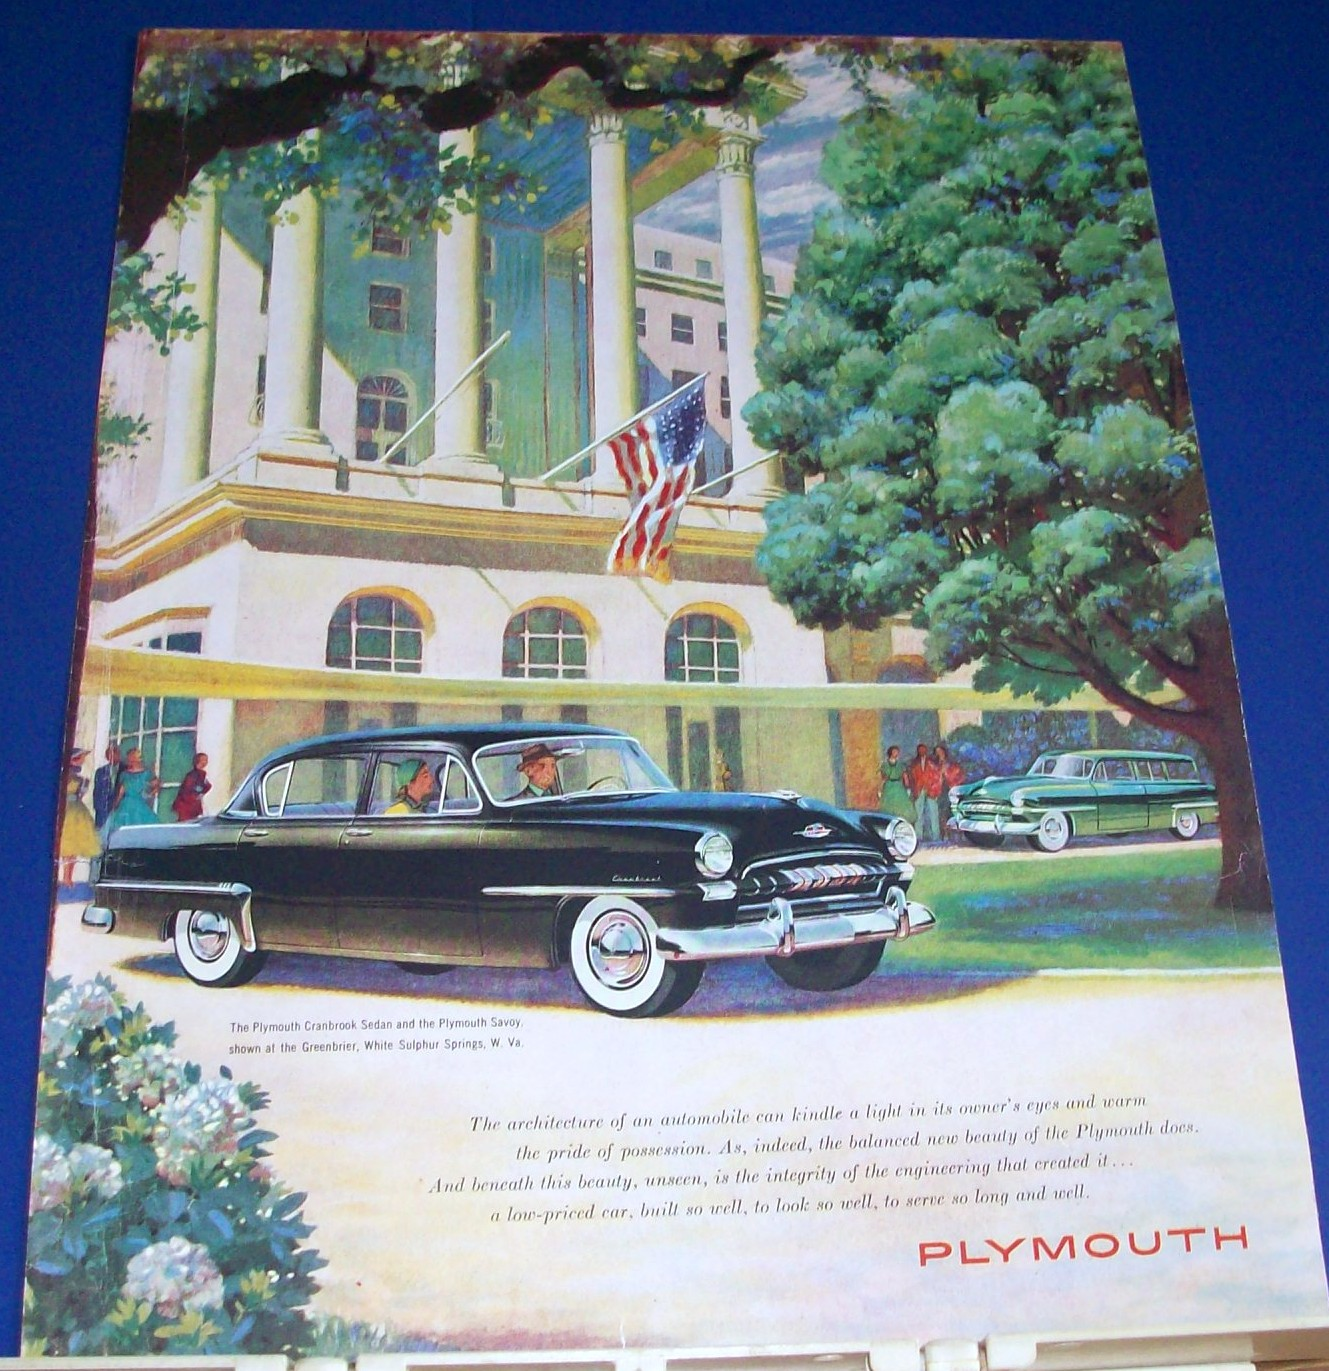 1953 Plymouth Cranbrook Sedan @ Greenbrier Ad. Perfect for framing!